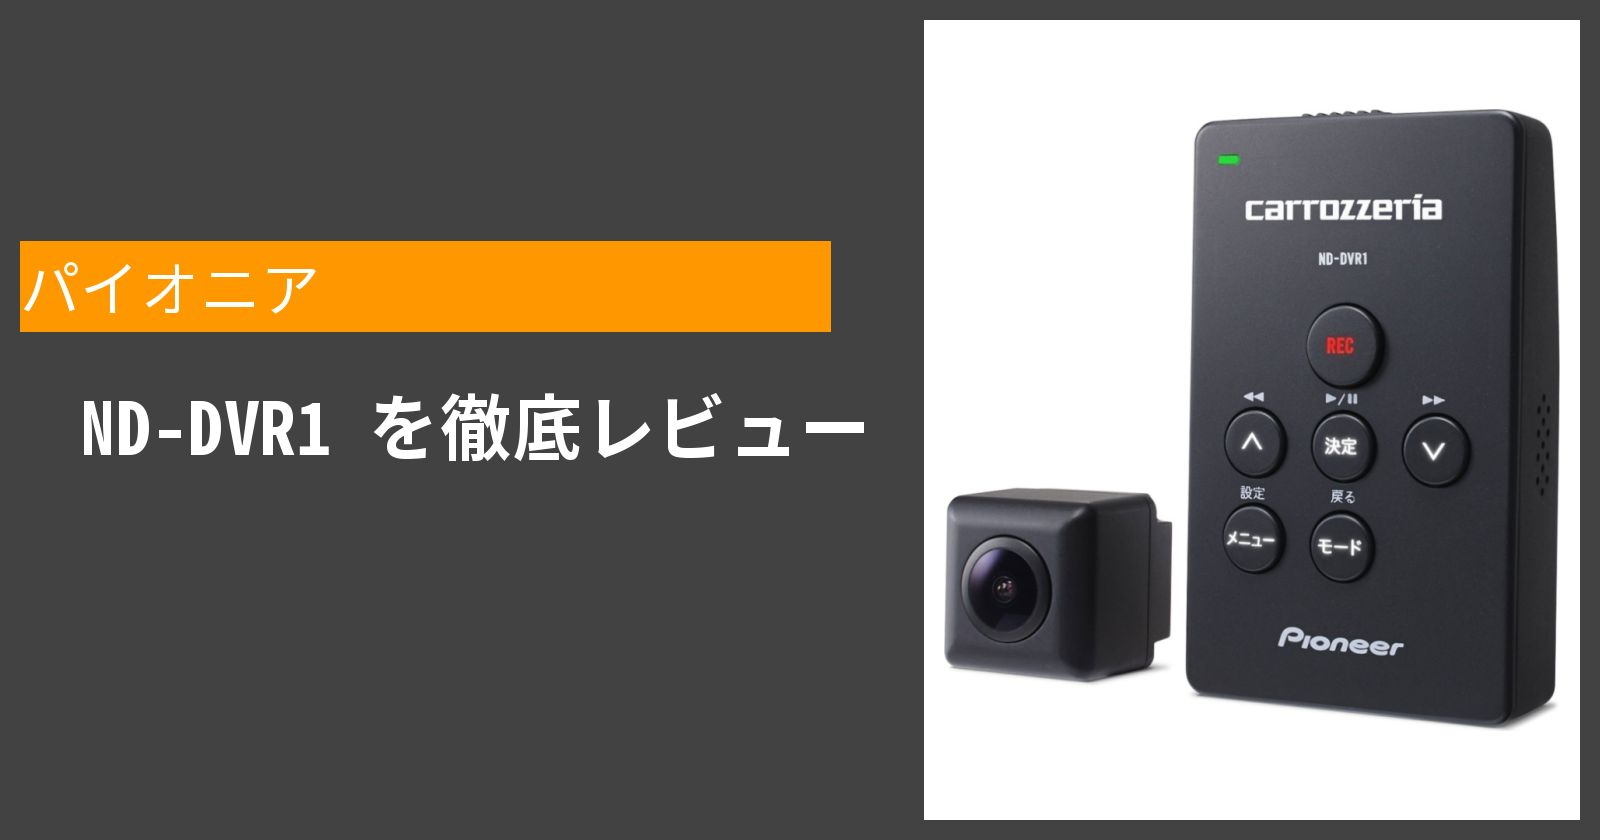 ND-DVR1を徹底評価